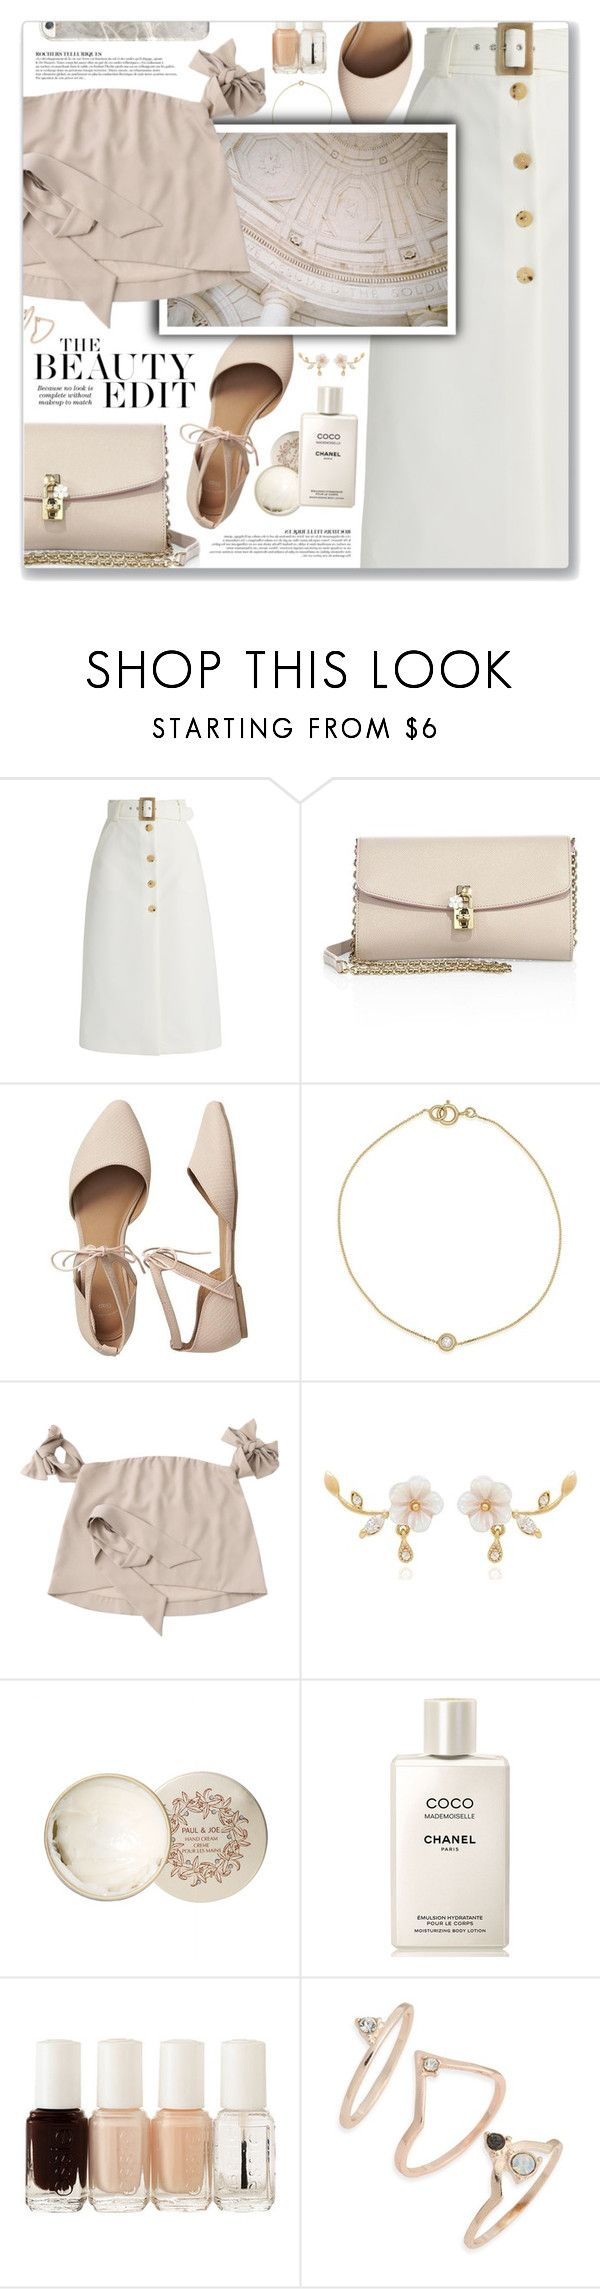 """""""See You Soon, Coldplay"""" by blendasantos ❤ liked on Polyvore featuring Anja, Bella Freud, Dolce&Gabbana, Gap, Paul & Joe, Chanel, Essie and Topshop"""